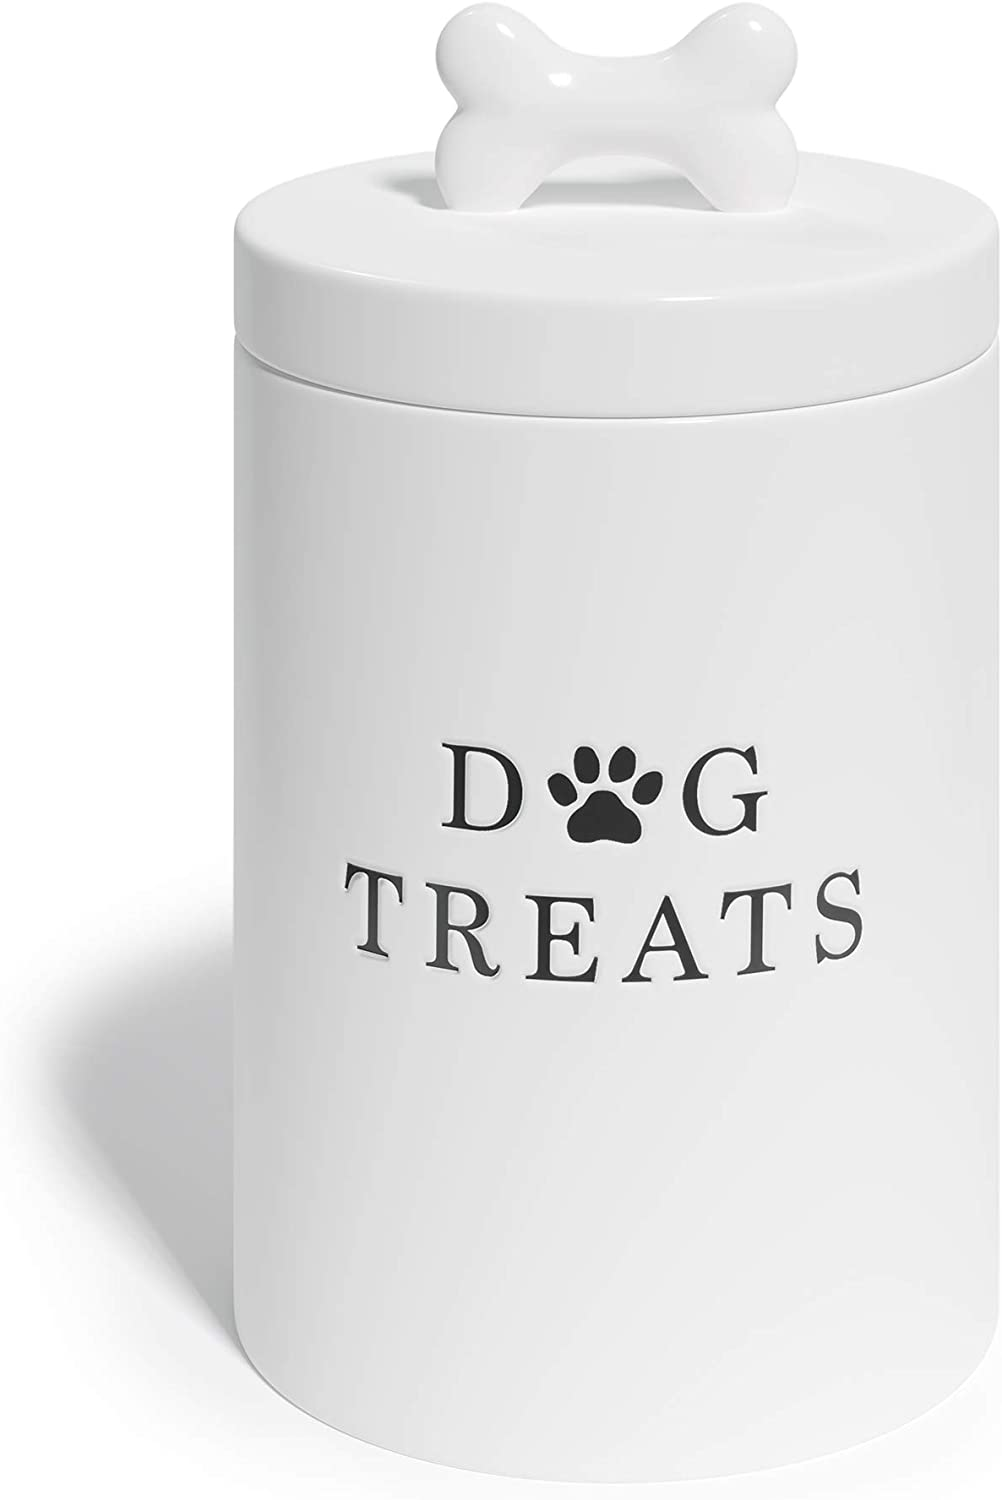 Barnyard Designs Dog Treat Jar, Large Ceramic Airtight Canister with Lid, Rustic Farmhouse Pet Food Storage Container Holder for Cookies, Biscuits, and Snacks, White, 5.25